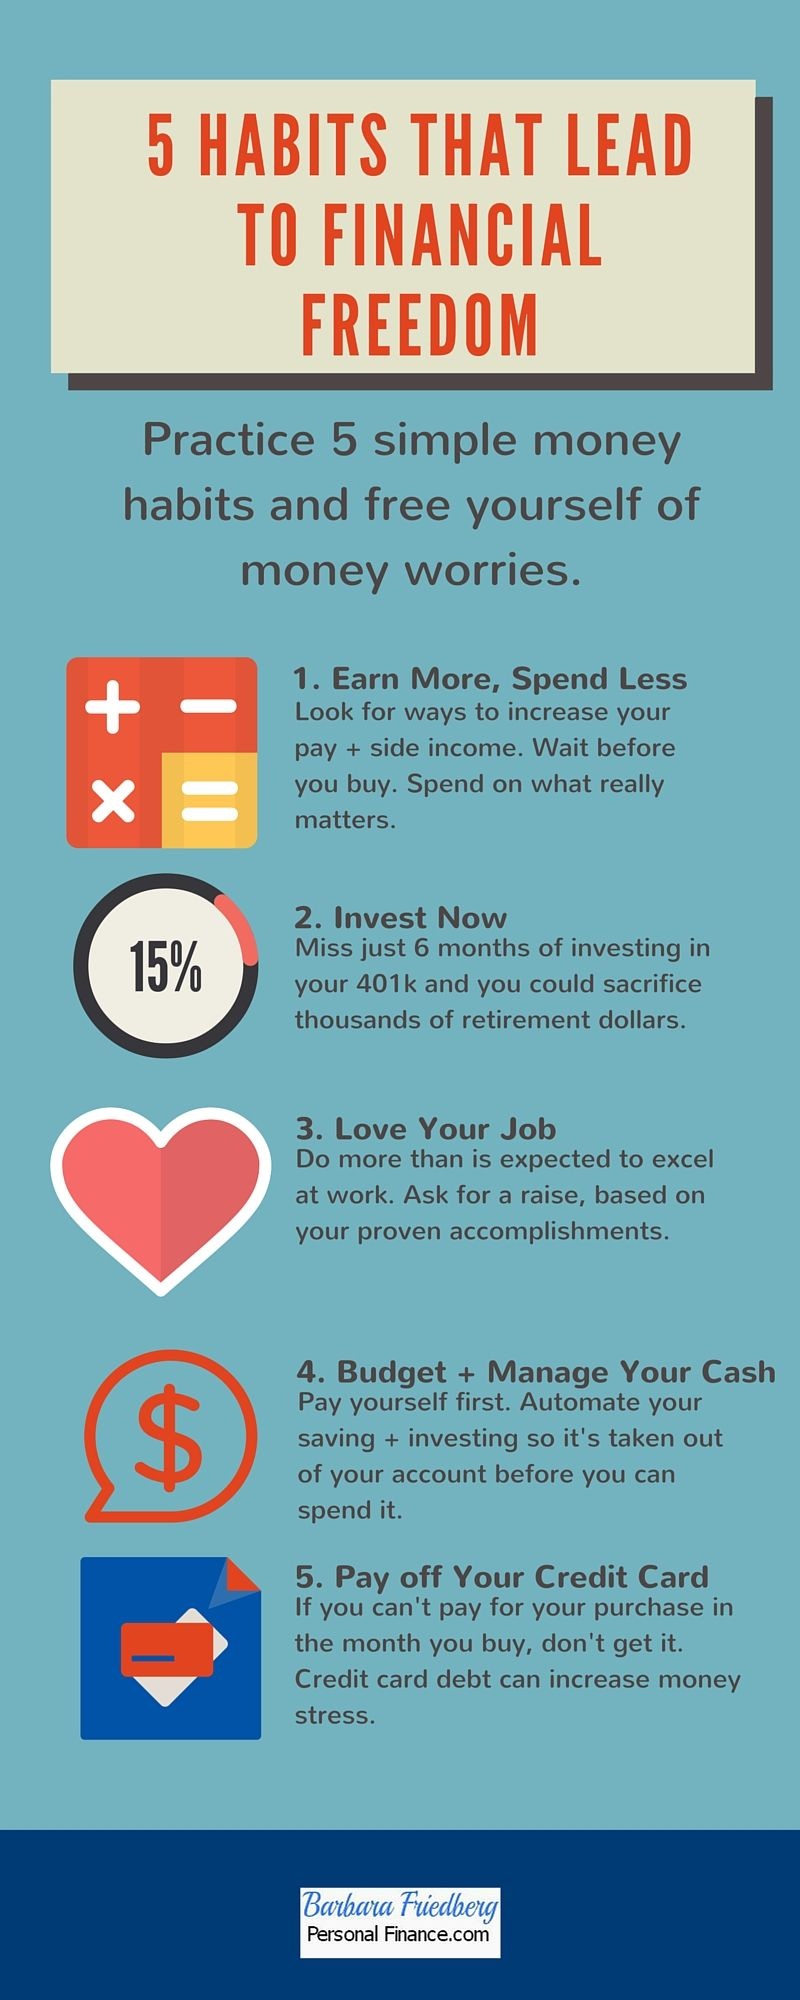 Law Of Attraction Quotes Money Saving Ideas Pinterest Personal Finance Finance And